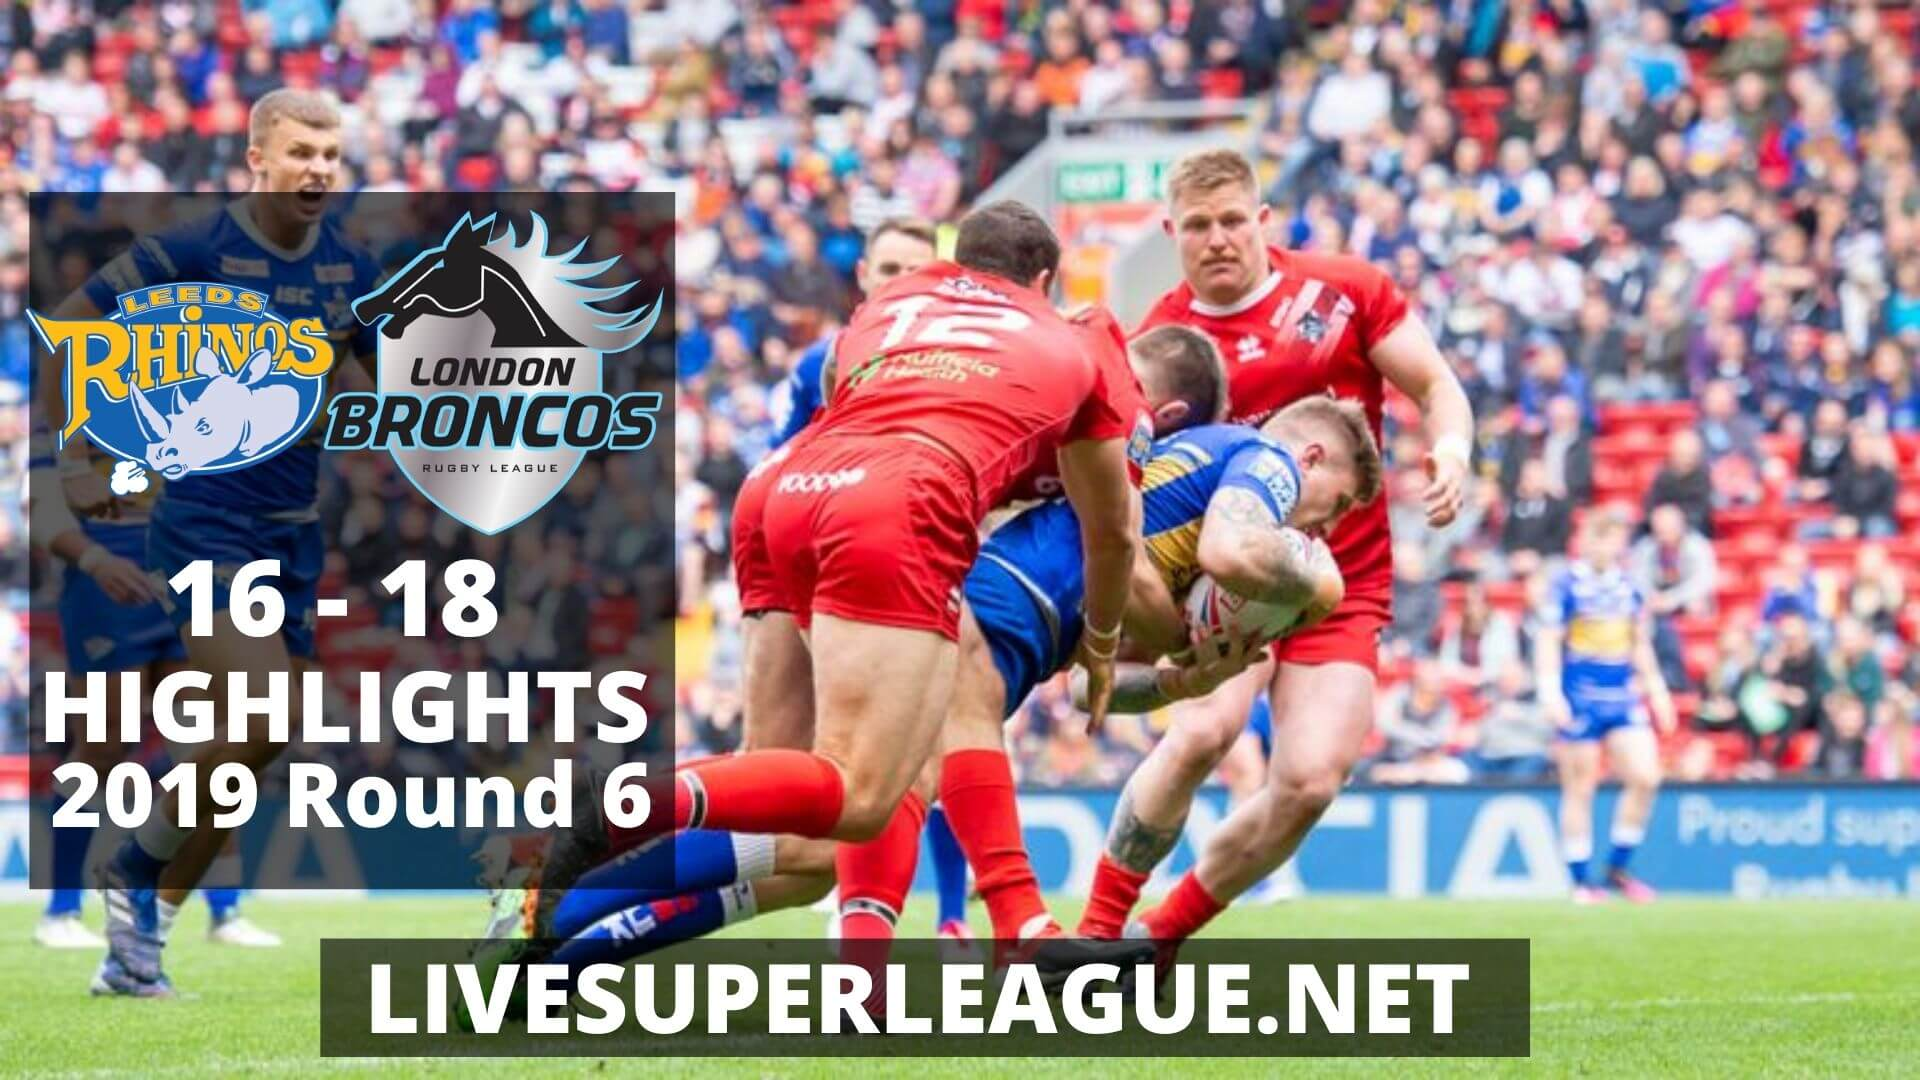 Leeds Rhinos vs London Broncos Highlights 2019 Round 6